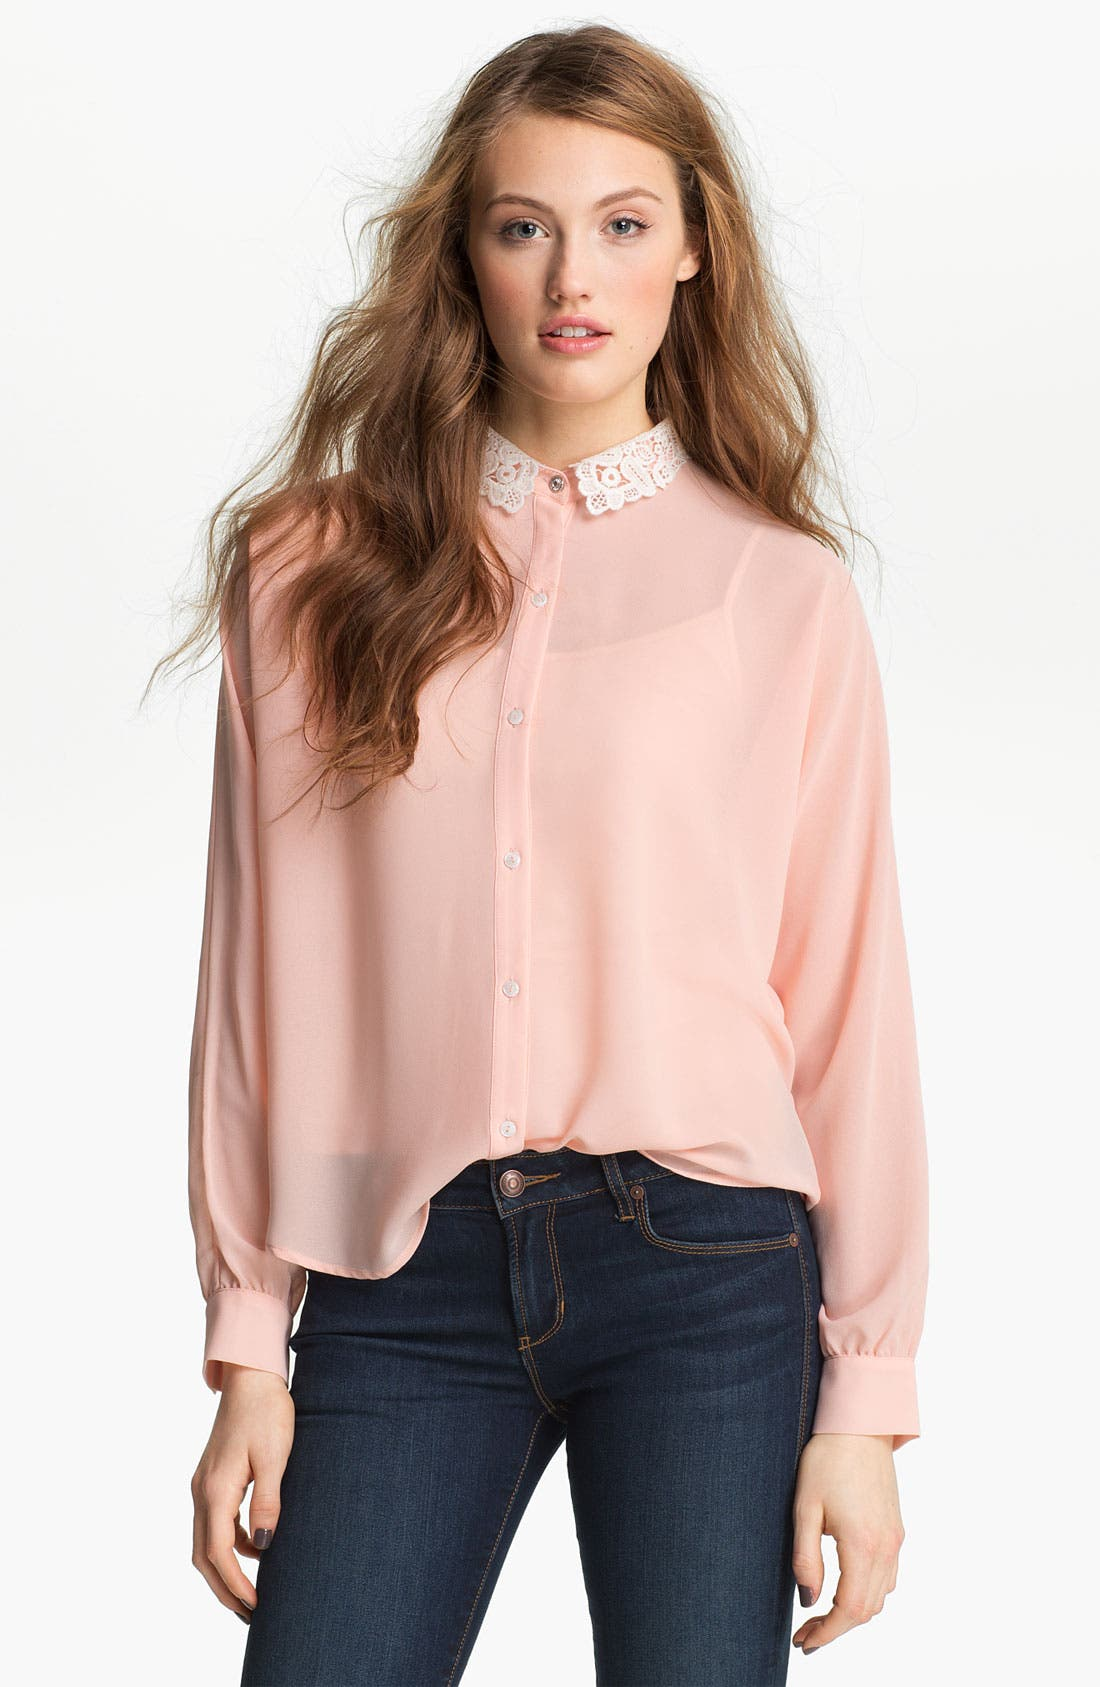 Alternate Image 1 Selected - Elodie Lace Collar Chiffon Shirt (Juniors)